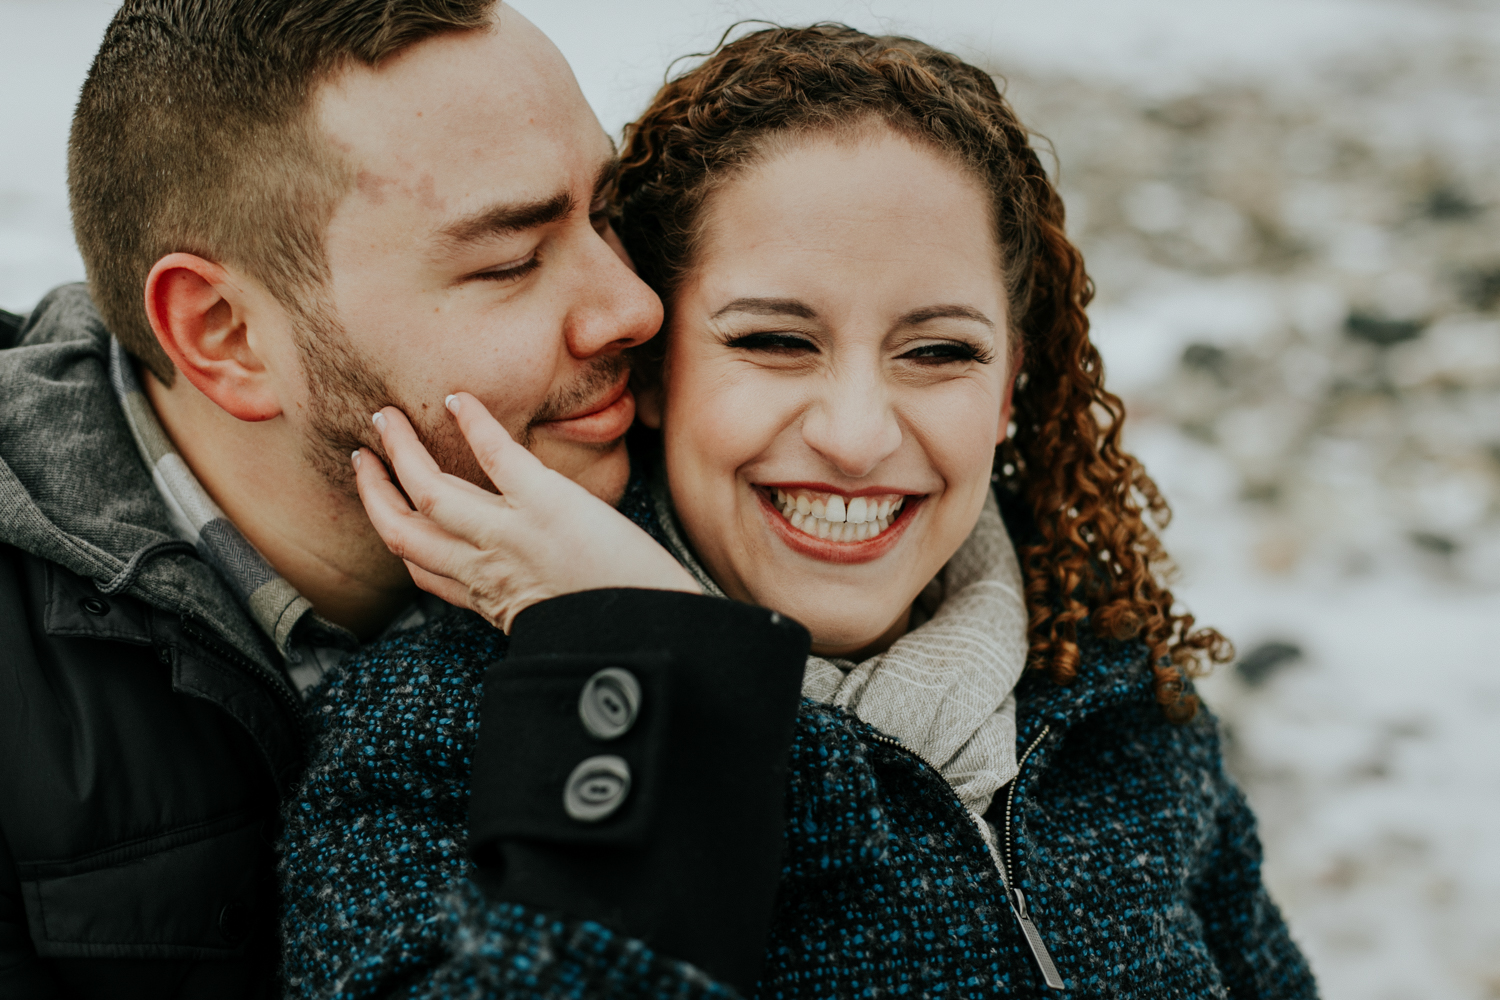 waterton-photographer-love-and-be-loved-photography-trent-danielle-engagement-winter-picture-image-photo-13.jpg